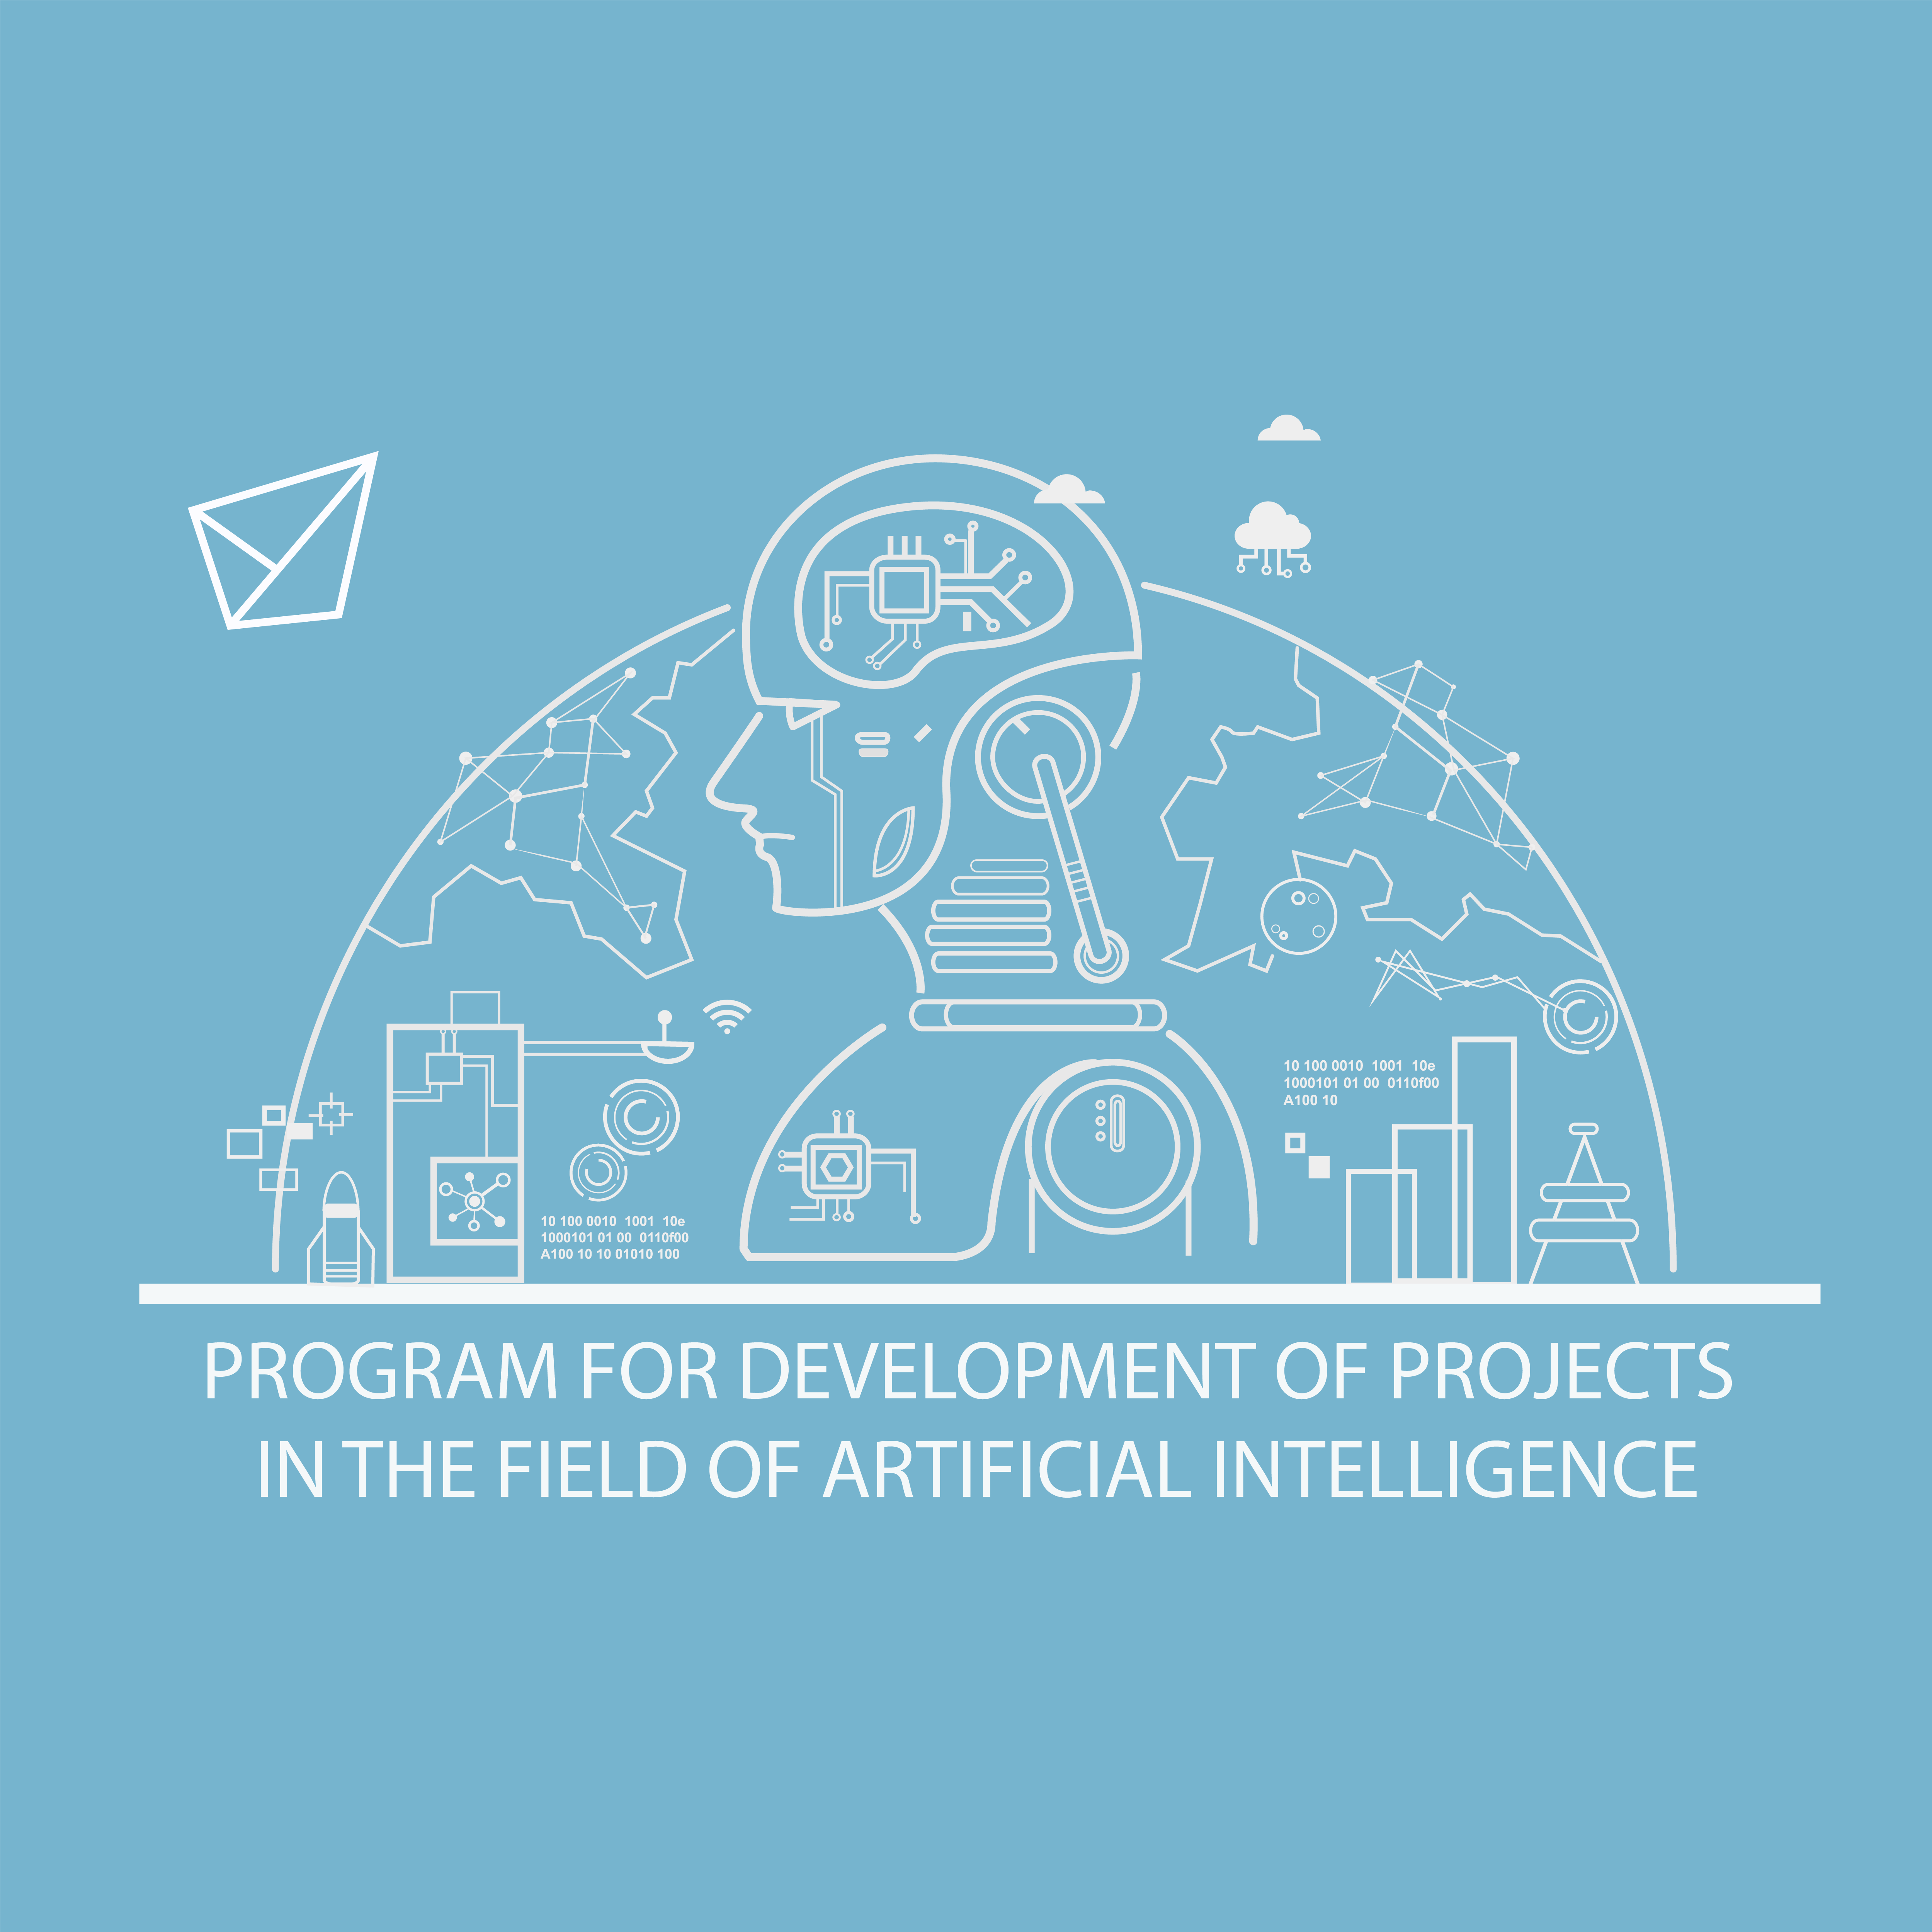 Program for Development of Projects in the Field of Artificial Intelligence